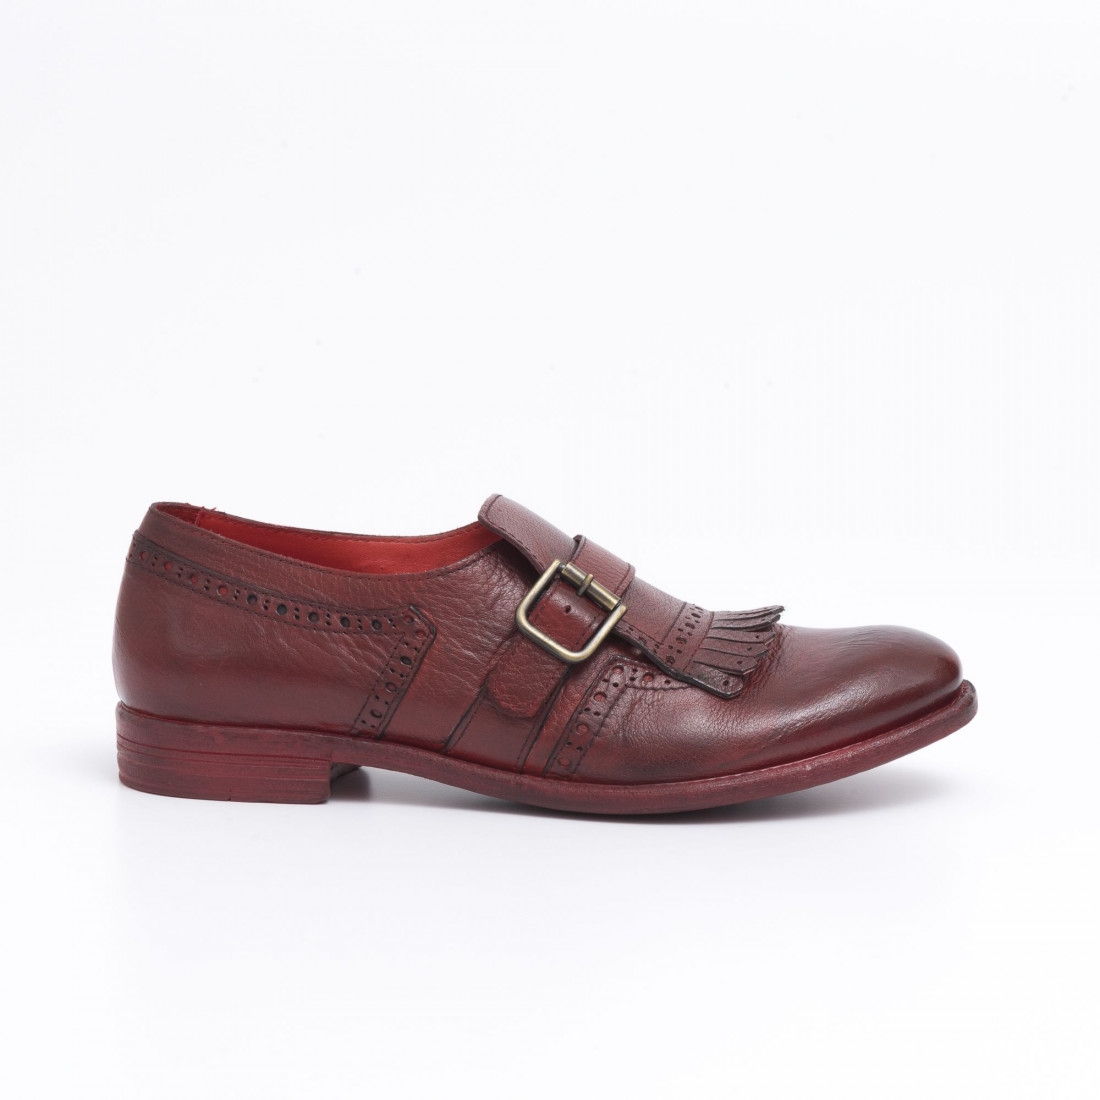 monk straps woman hundred w246 08 bufalo rosso 485